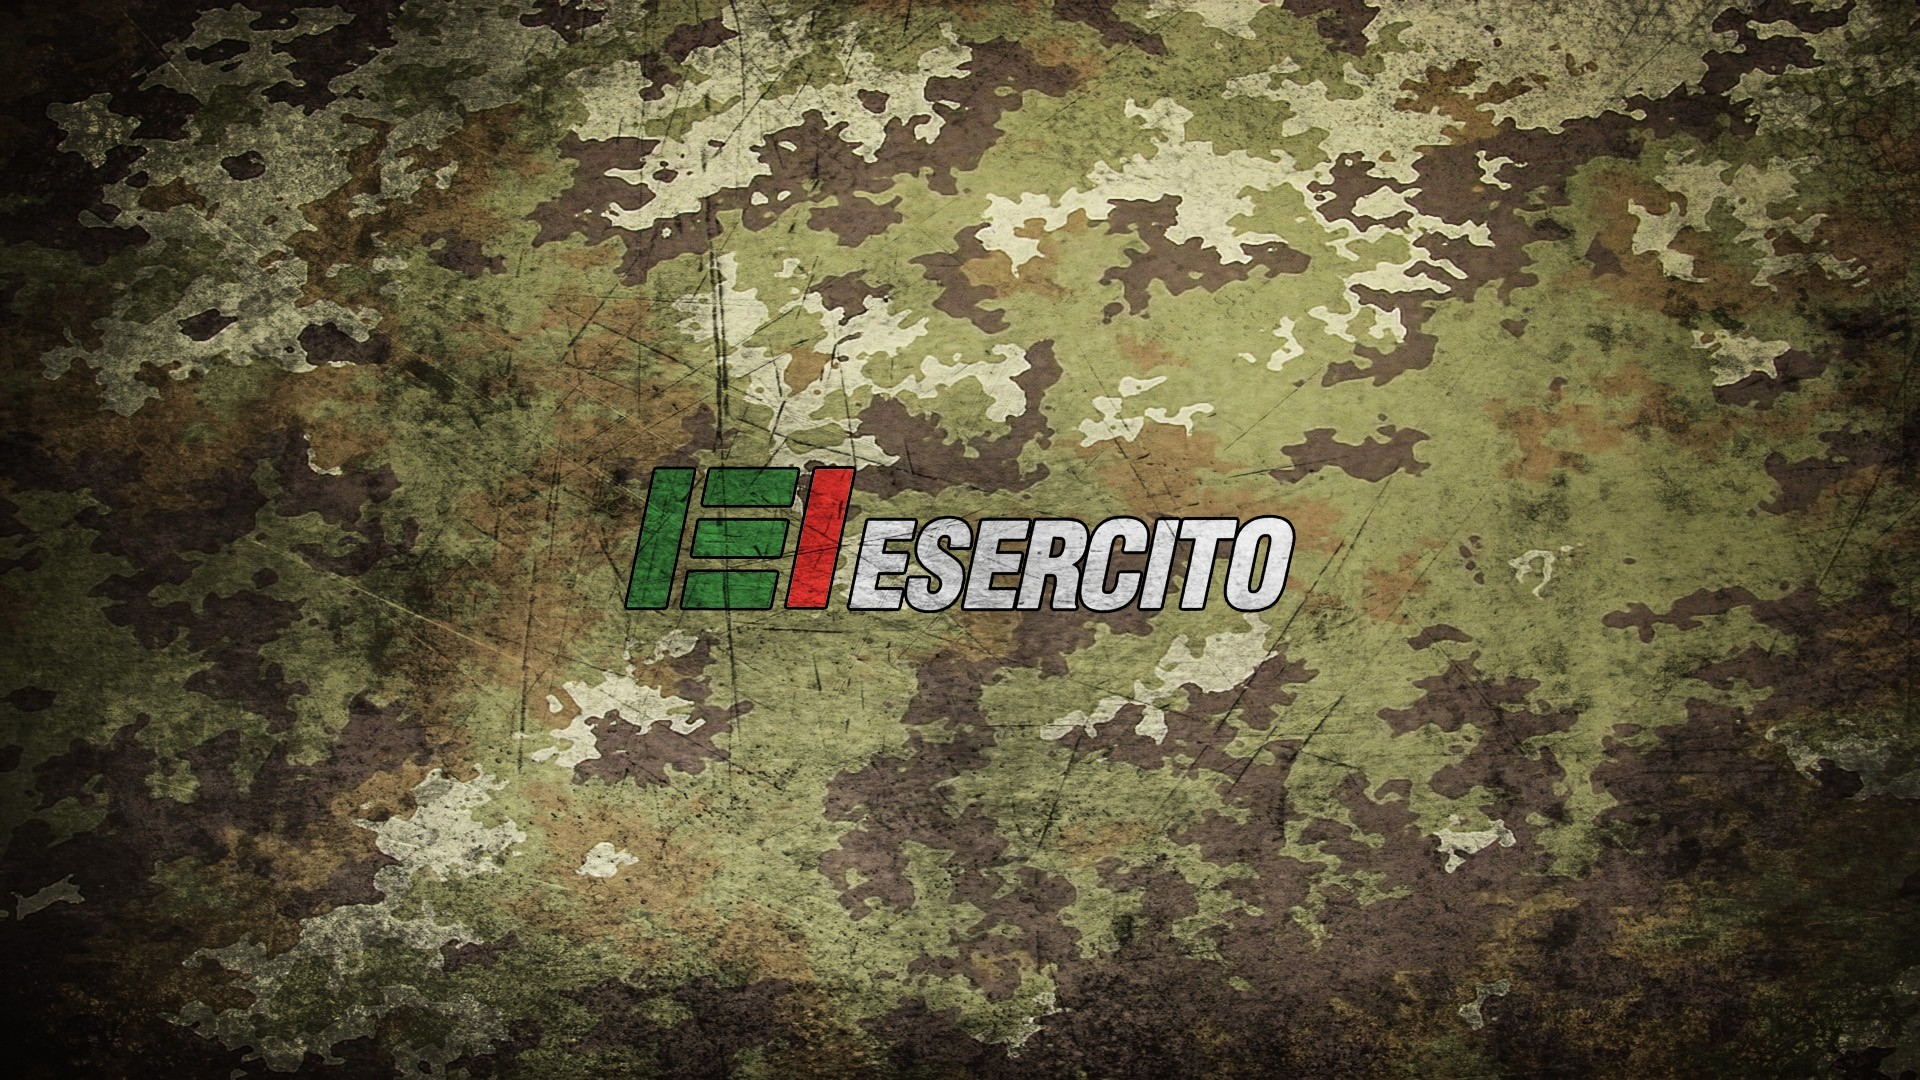 Army grunge esercito italian HD Wallpaper